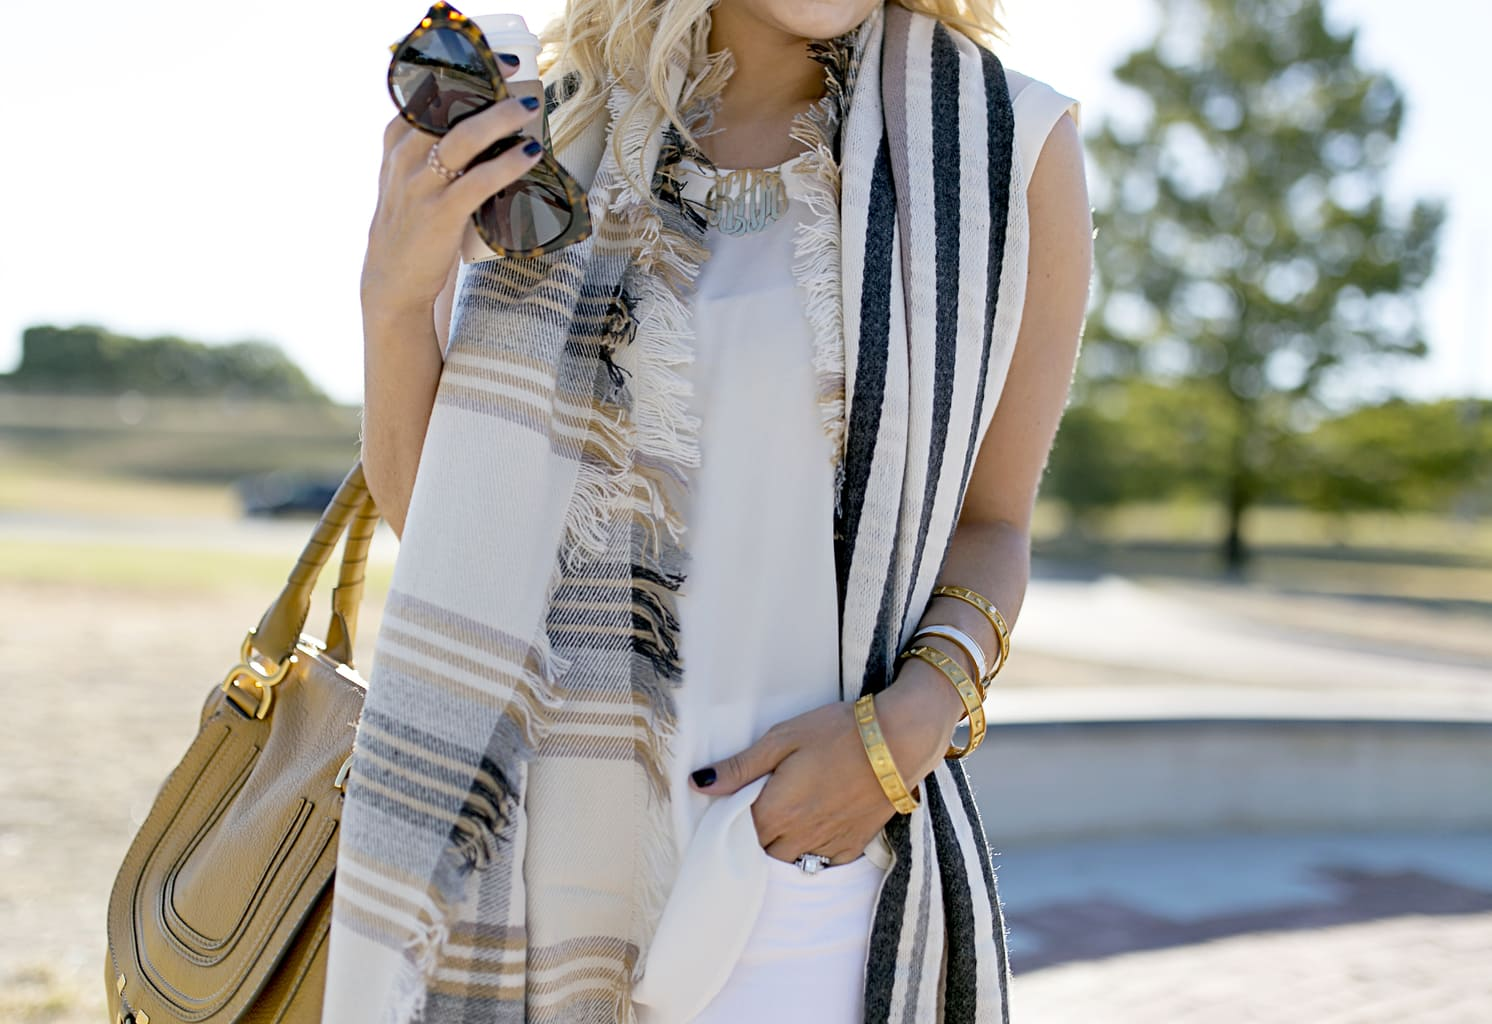 weekend faux turtleneck necklace fur julie manicure michael vos vest uniform paintbox kors watch bows striped sequins